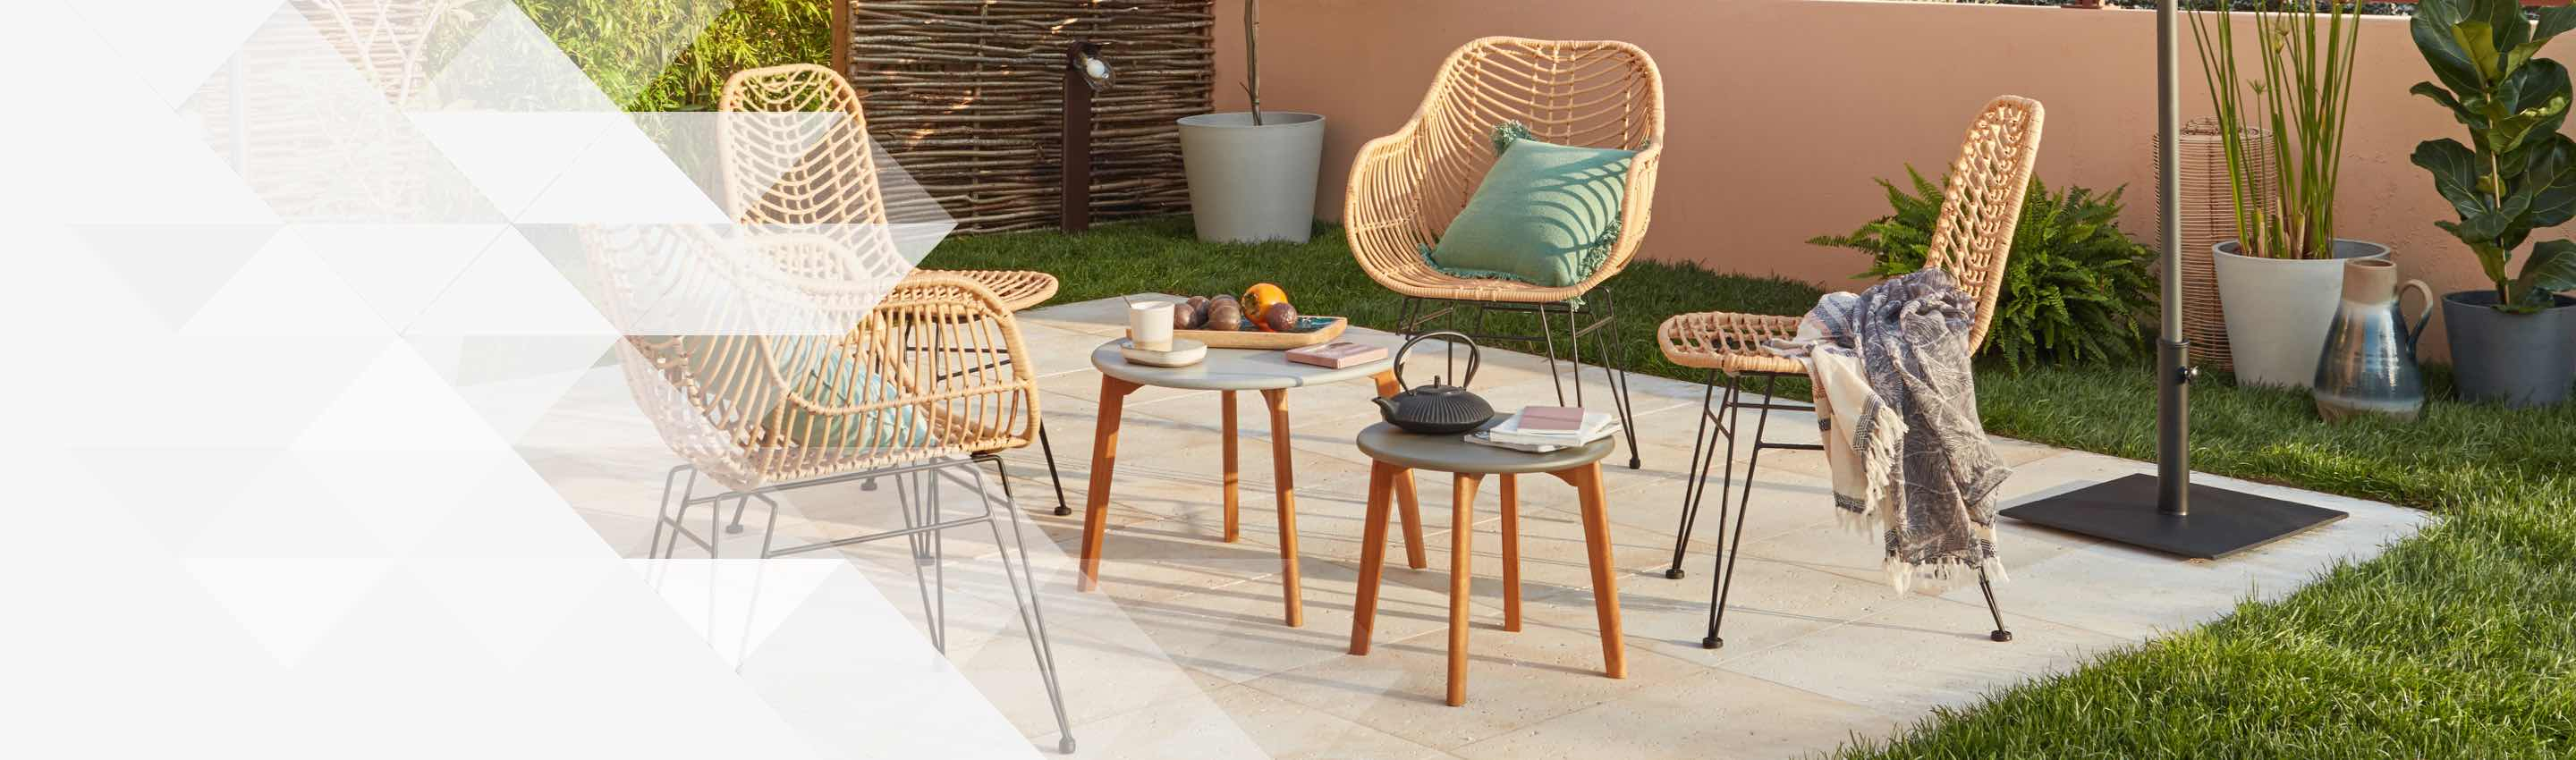 Mobilier De Jardin Wicker Salon De Jardin Table Et Chaise Mobilier De Jardin Leroy Merlin